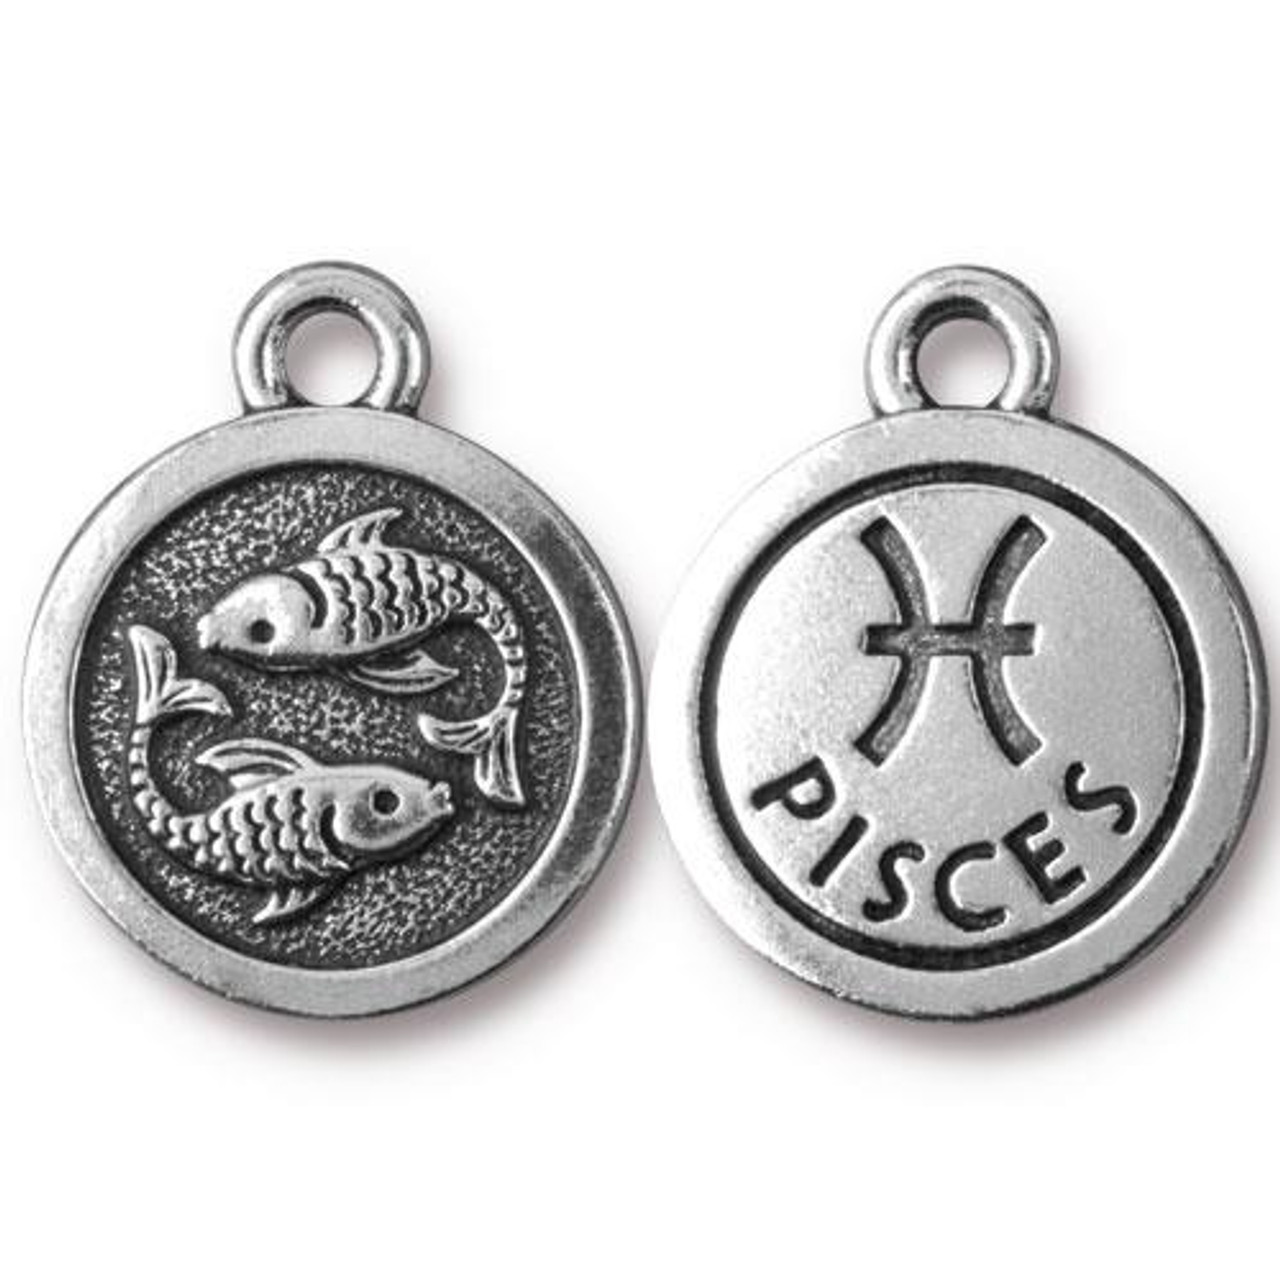 Lead Free Pewter Ocean Sea Life Beach Charms  G15a-20 TierraCast Antiqued /& Plated 20pack 20 Gold Seahorse Charms